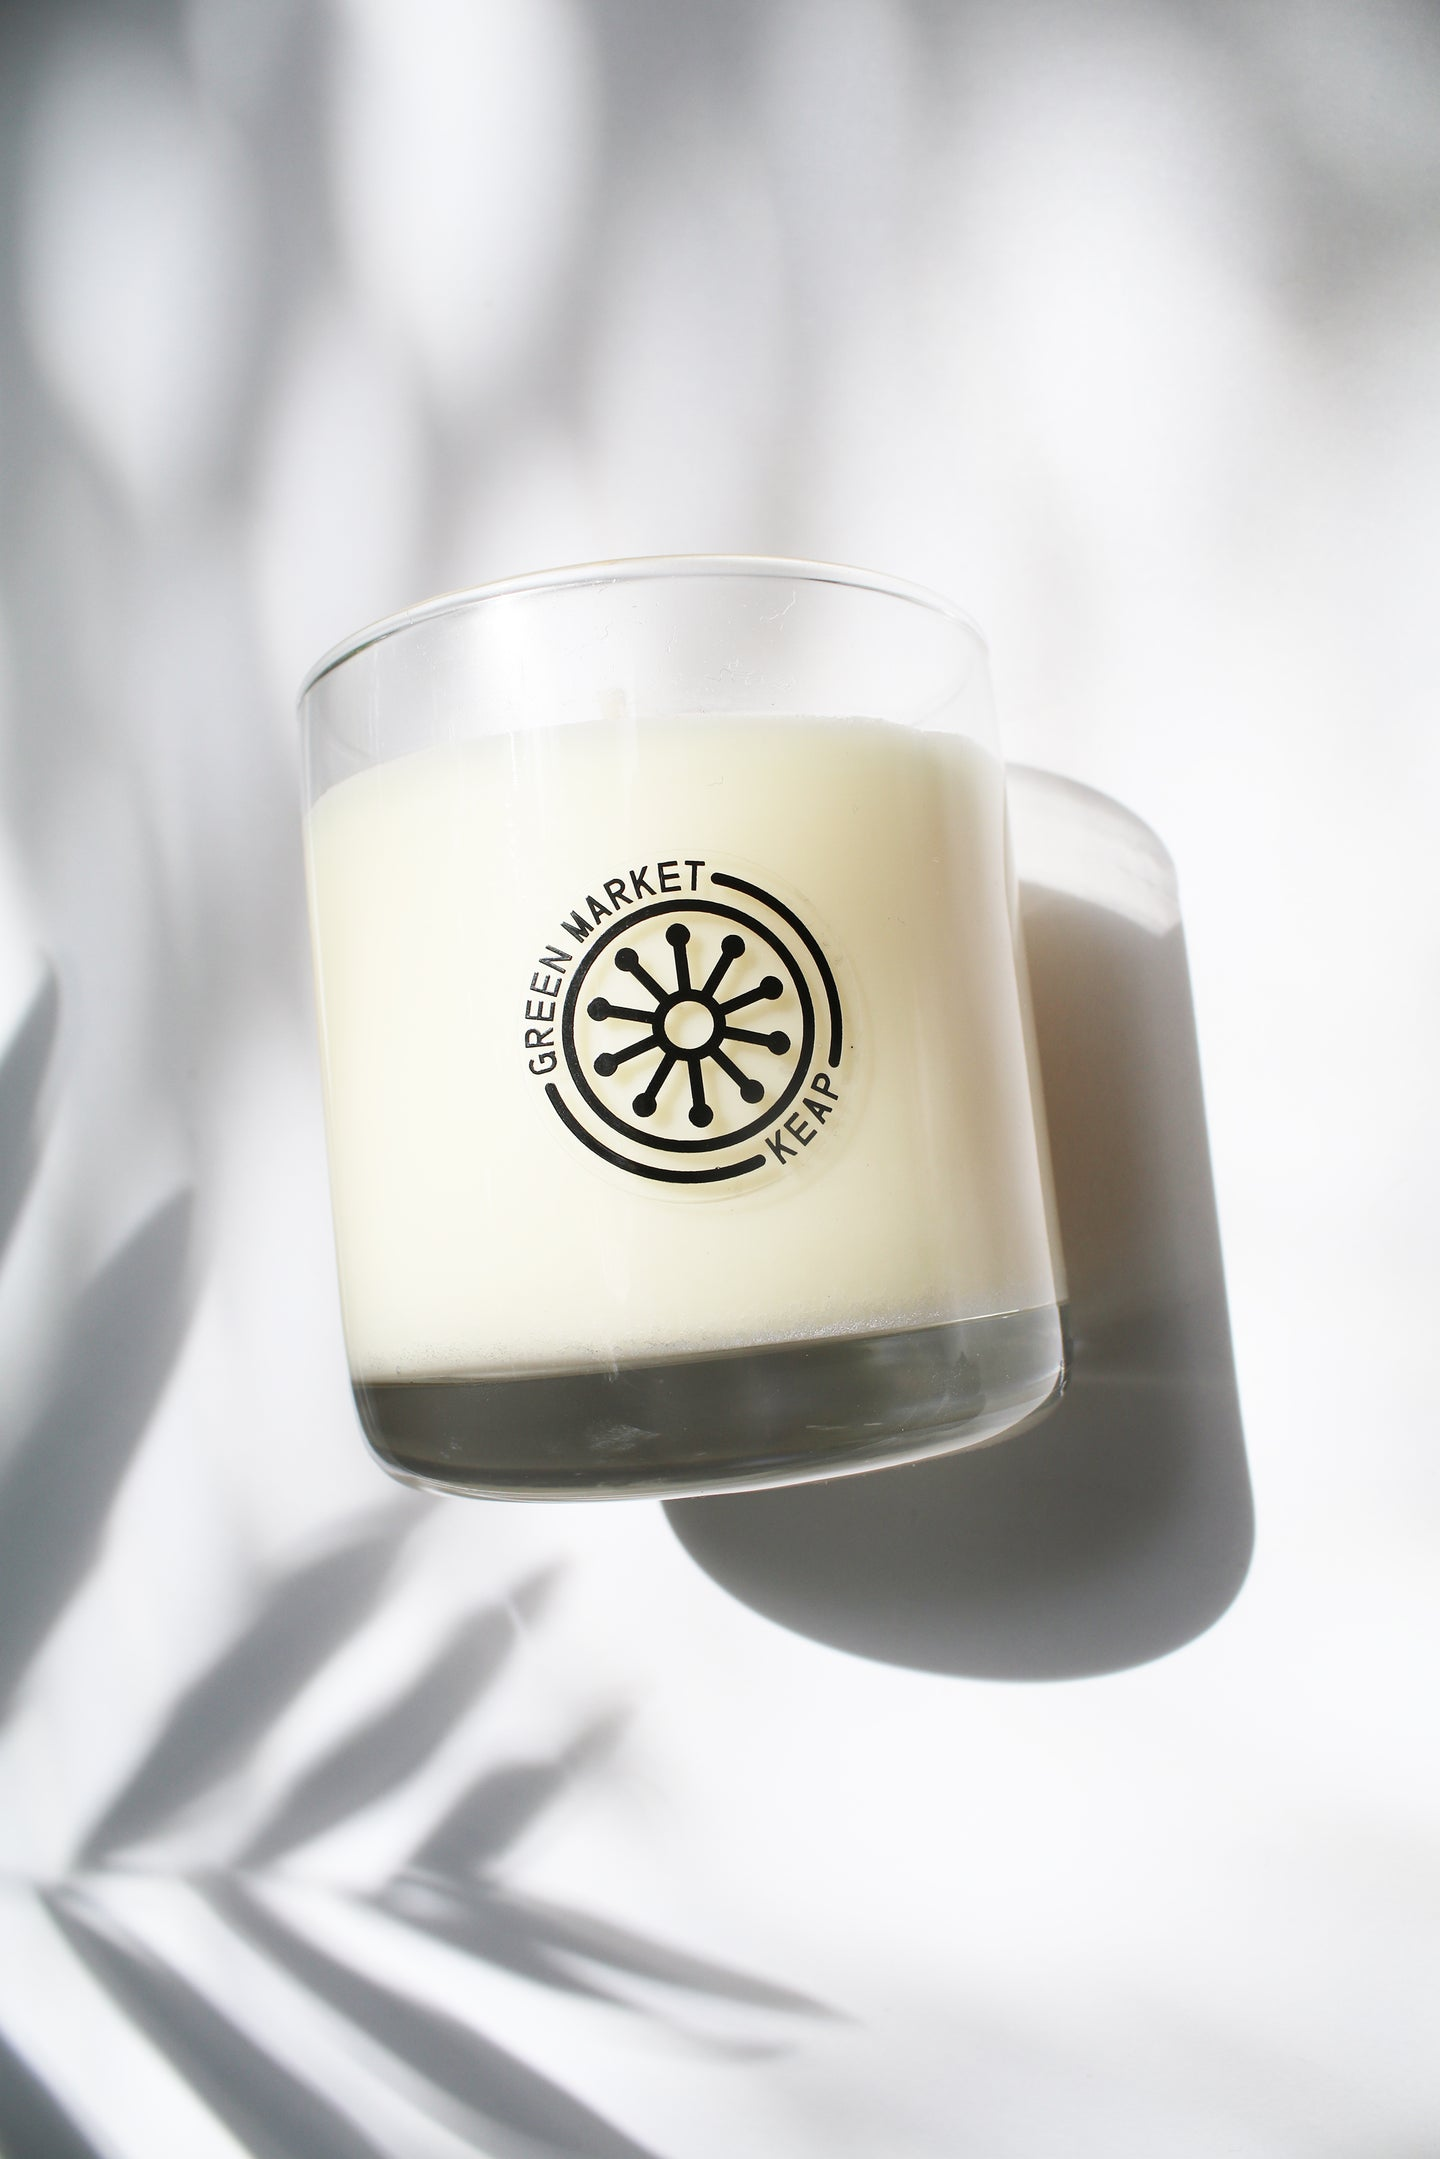 an up close video of a candle - the candle wax is a white color and is inside a clear glass container that doubles as a drinking tumbler once the candle burns out.